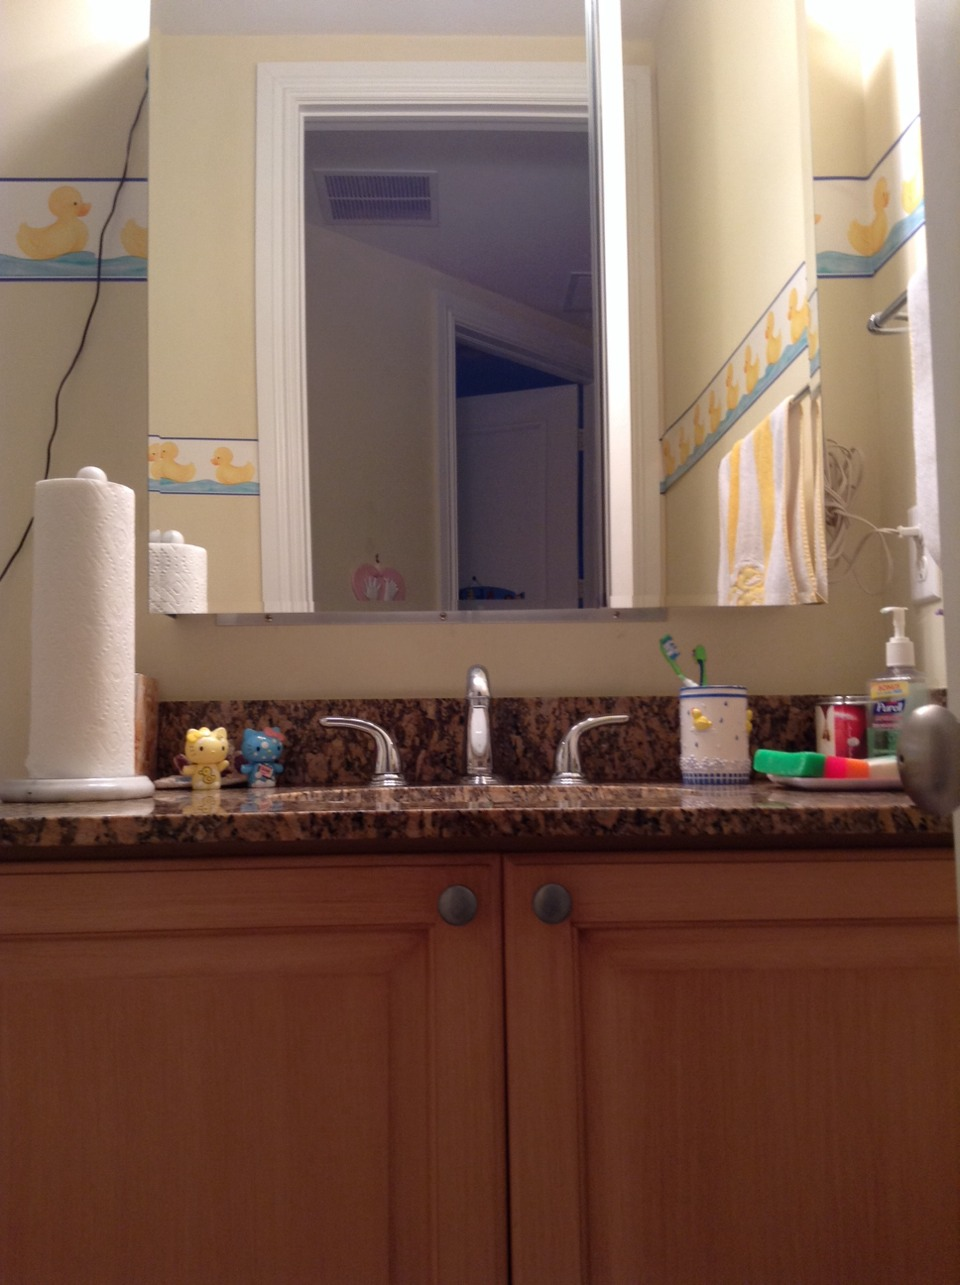 The first thing you see when you walk into my bathroom is the vanity/sink. I have a medicine cabinet and an under-sink cabinet.